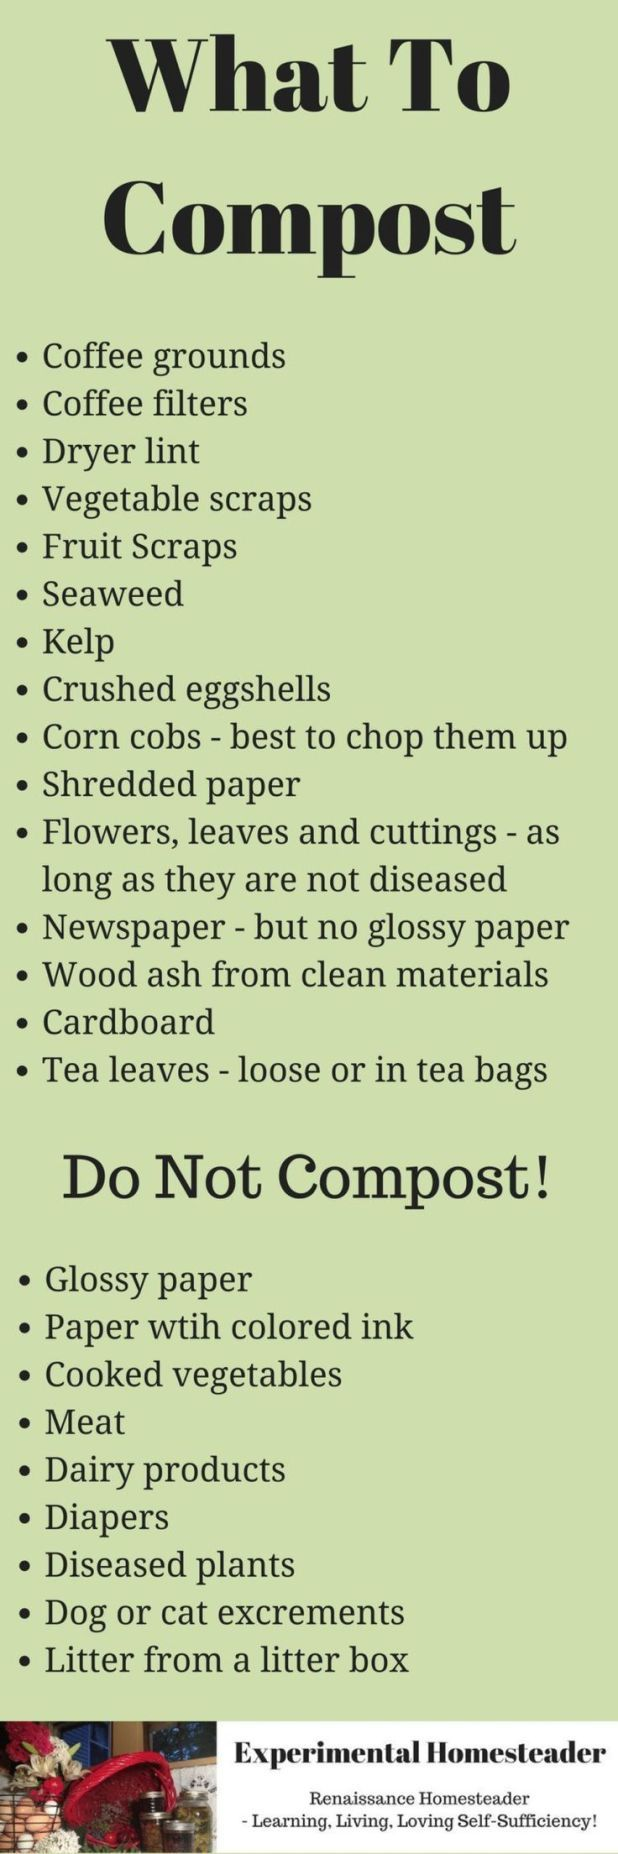 Learn how to make compost at home using materials you already have on hand and a...  Learn how to make compost at home using materials you already have on hand and a...